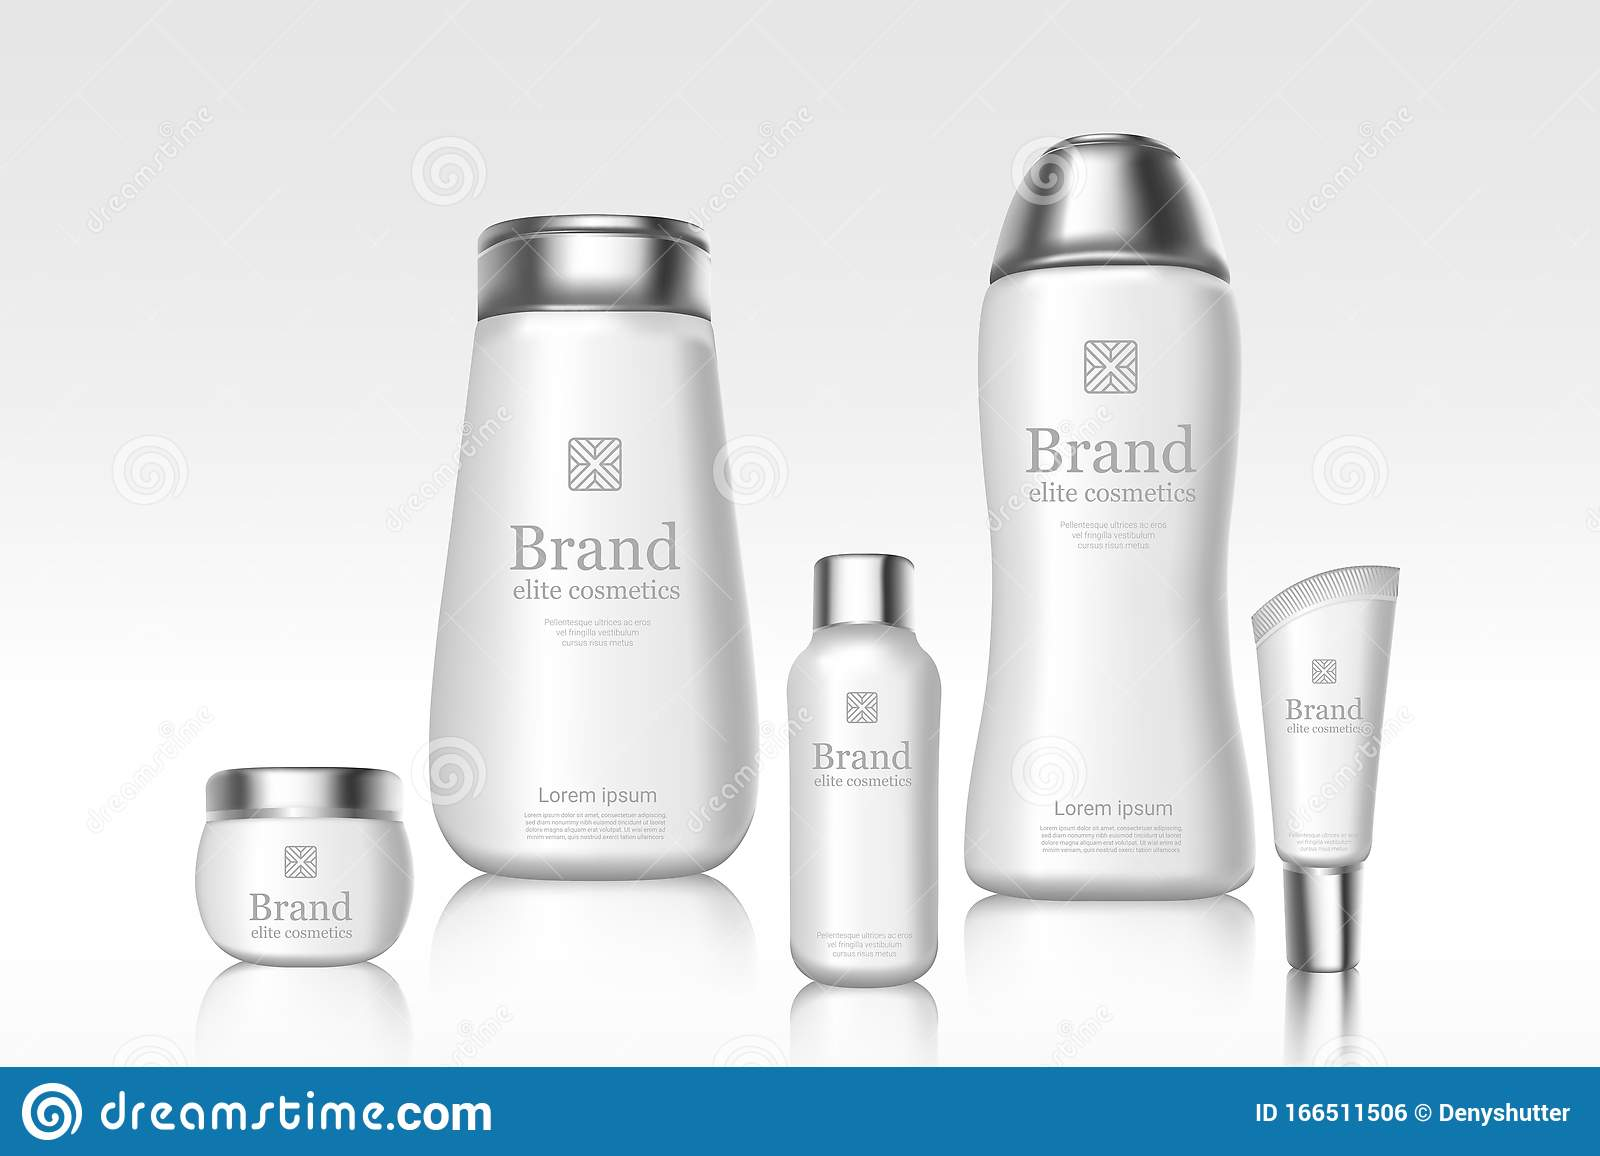 White Cosmetics Branded Bottles With Brand Logo Package Design Mockup Advertisement Banner Template Skincare Products Stock Vector Illustration Of Health Foam 166511506